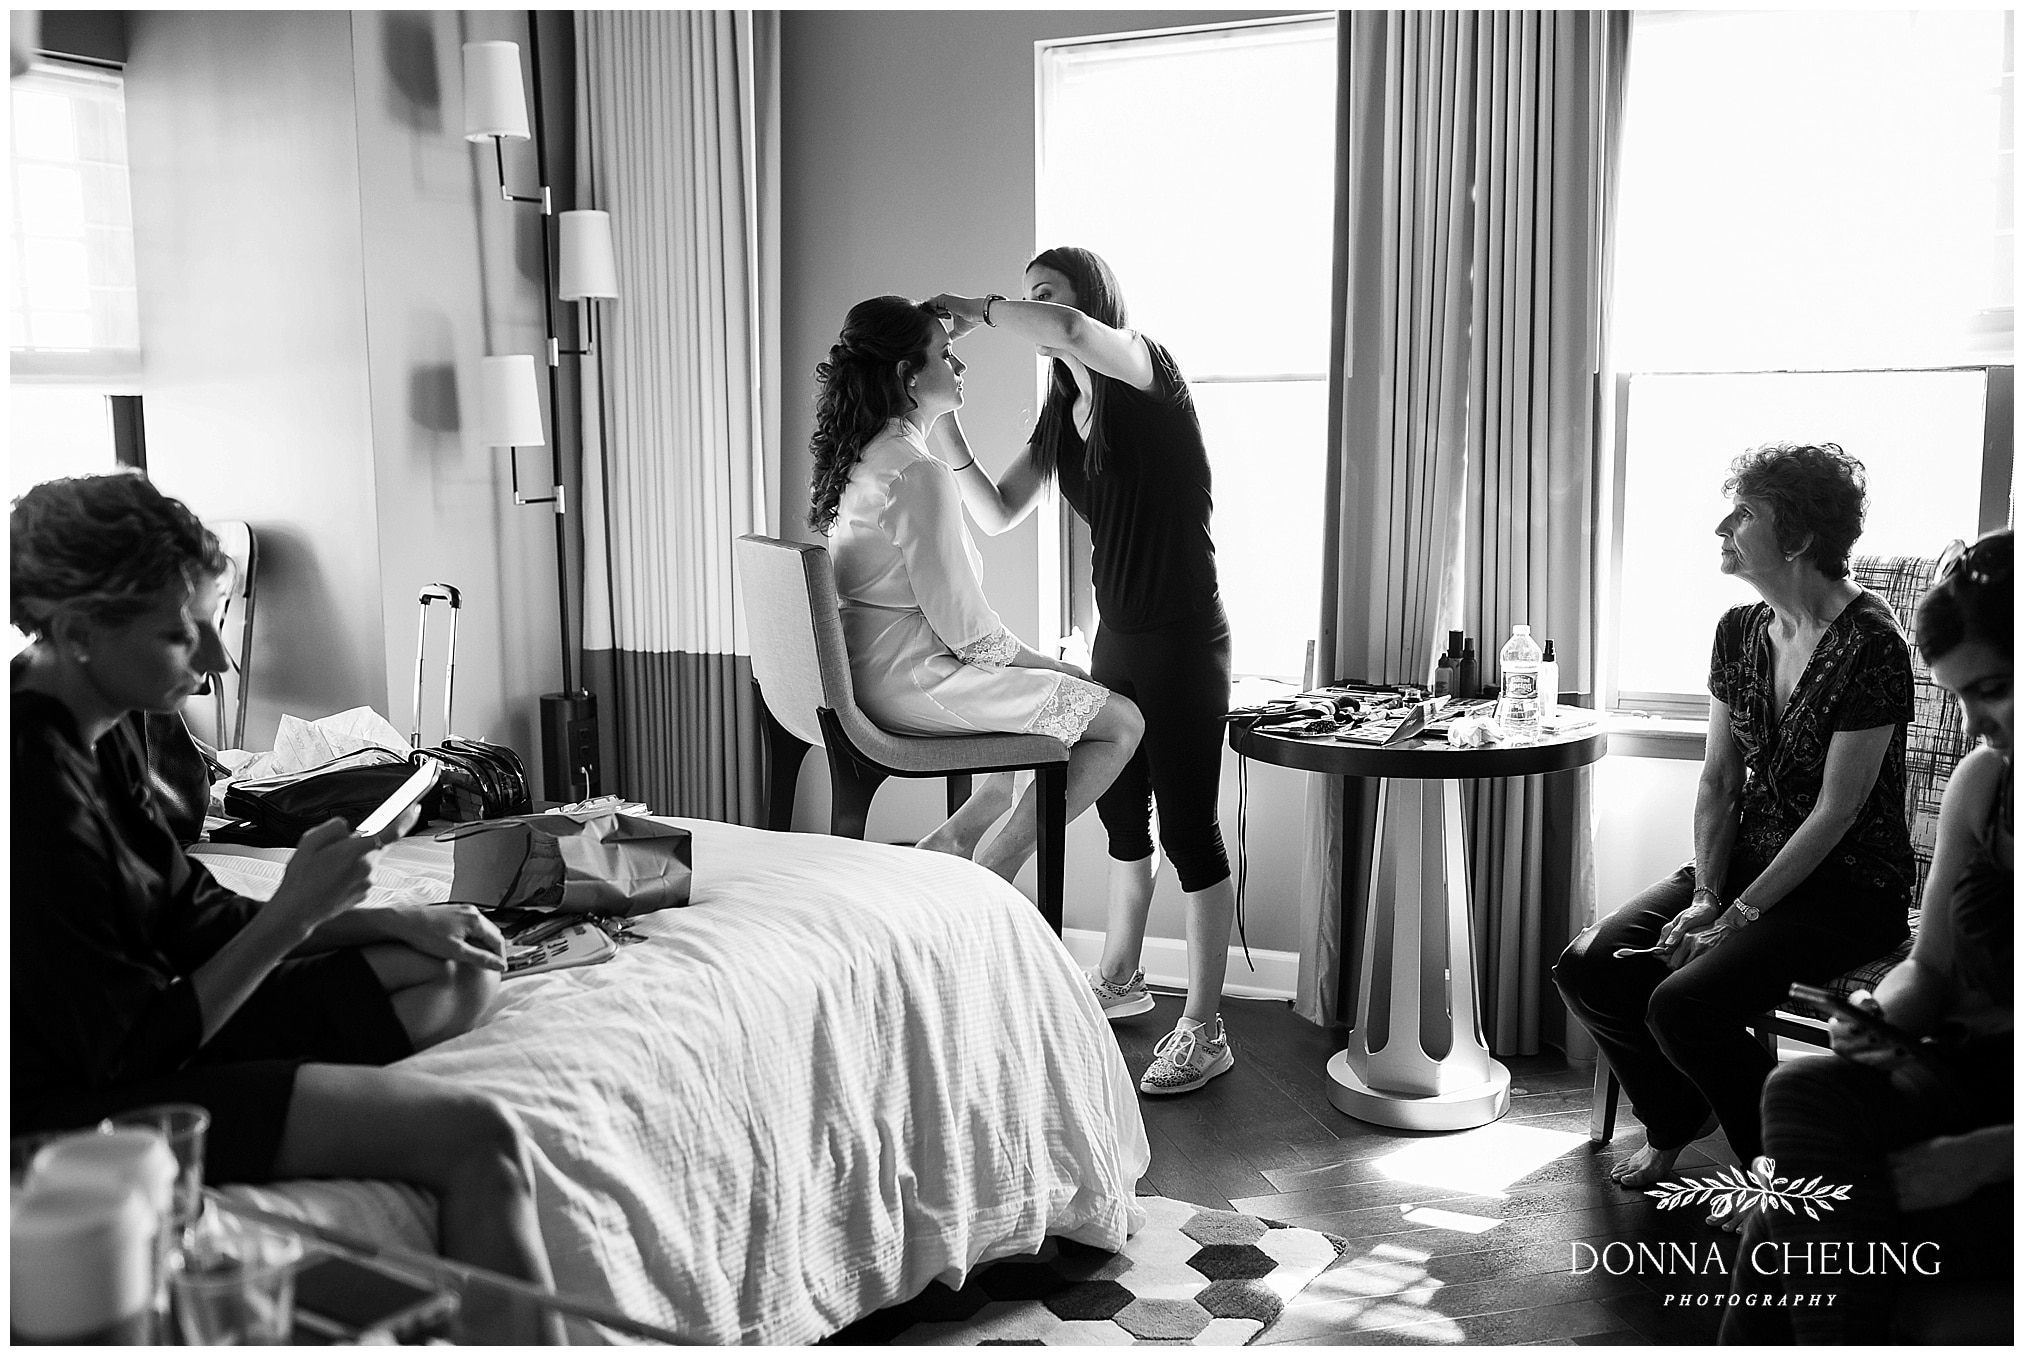 Tremendous The Pond House Cafe Wedding Donna Cheung Photography Download Free Architecture Designs Scobabritishbridgeorg